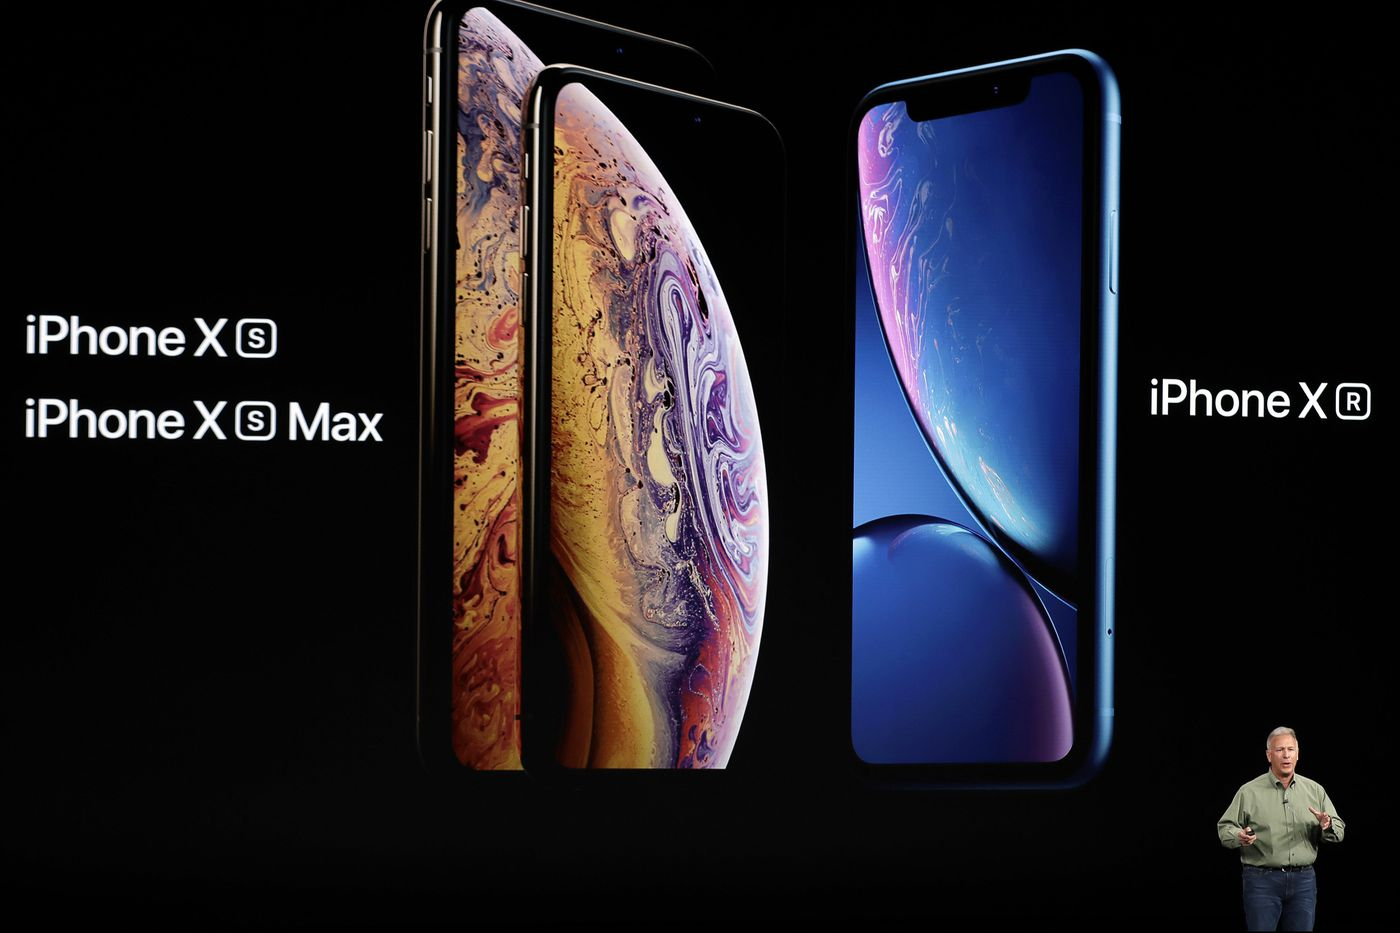 11street Opens Pre-Orders For iPhone Xs & iPhone Xs Max